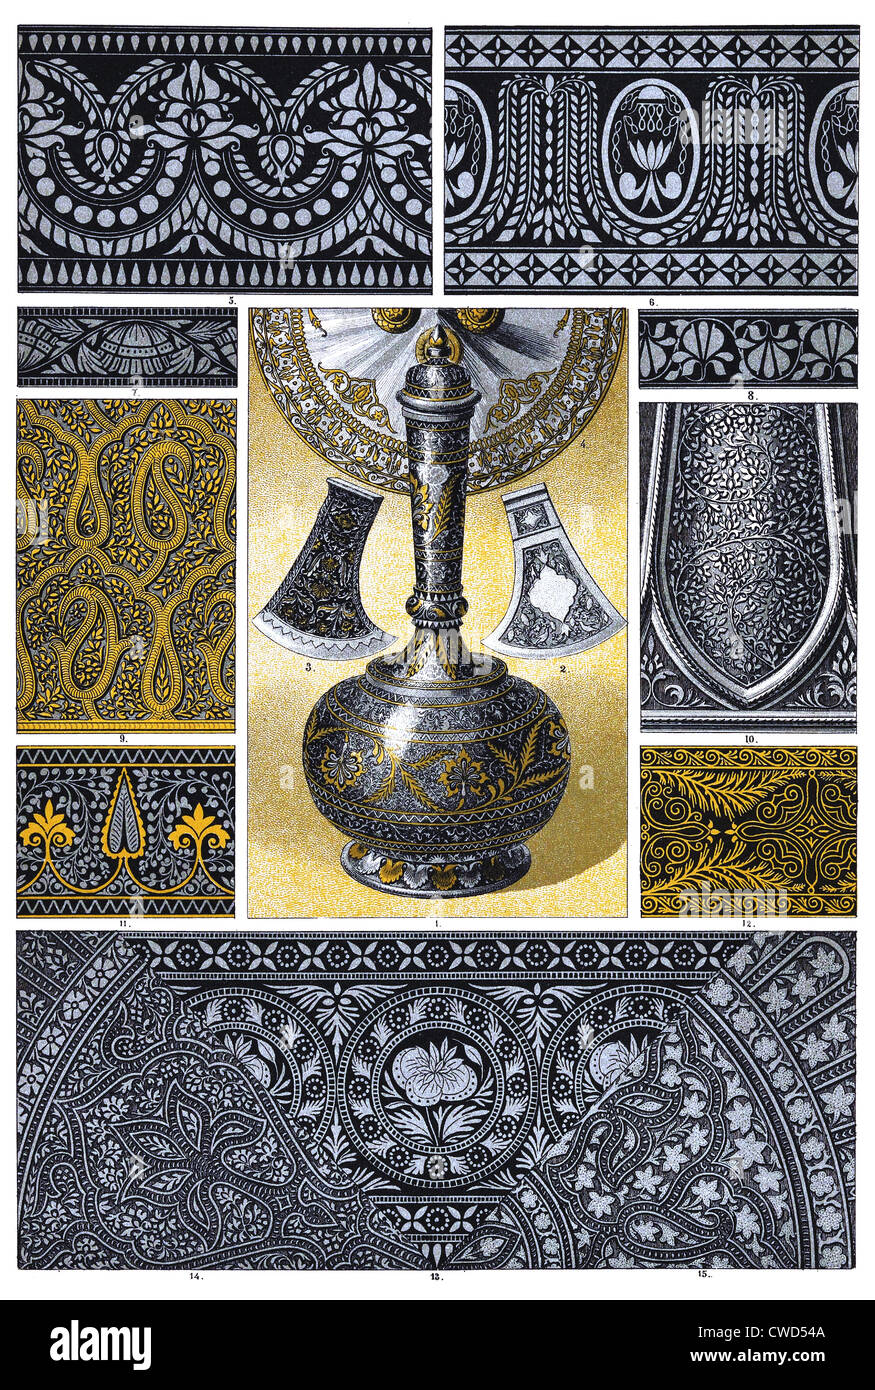 Indian metalwork - Stock Image